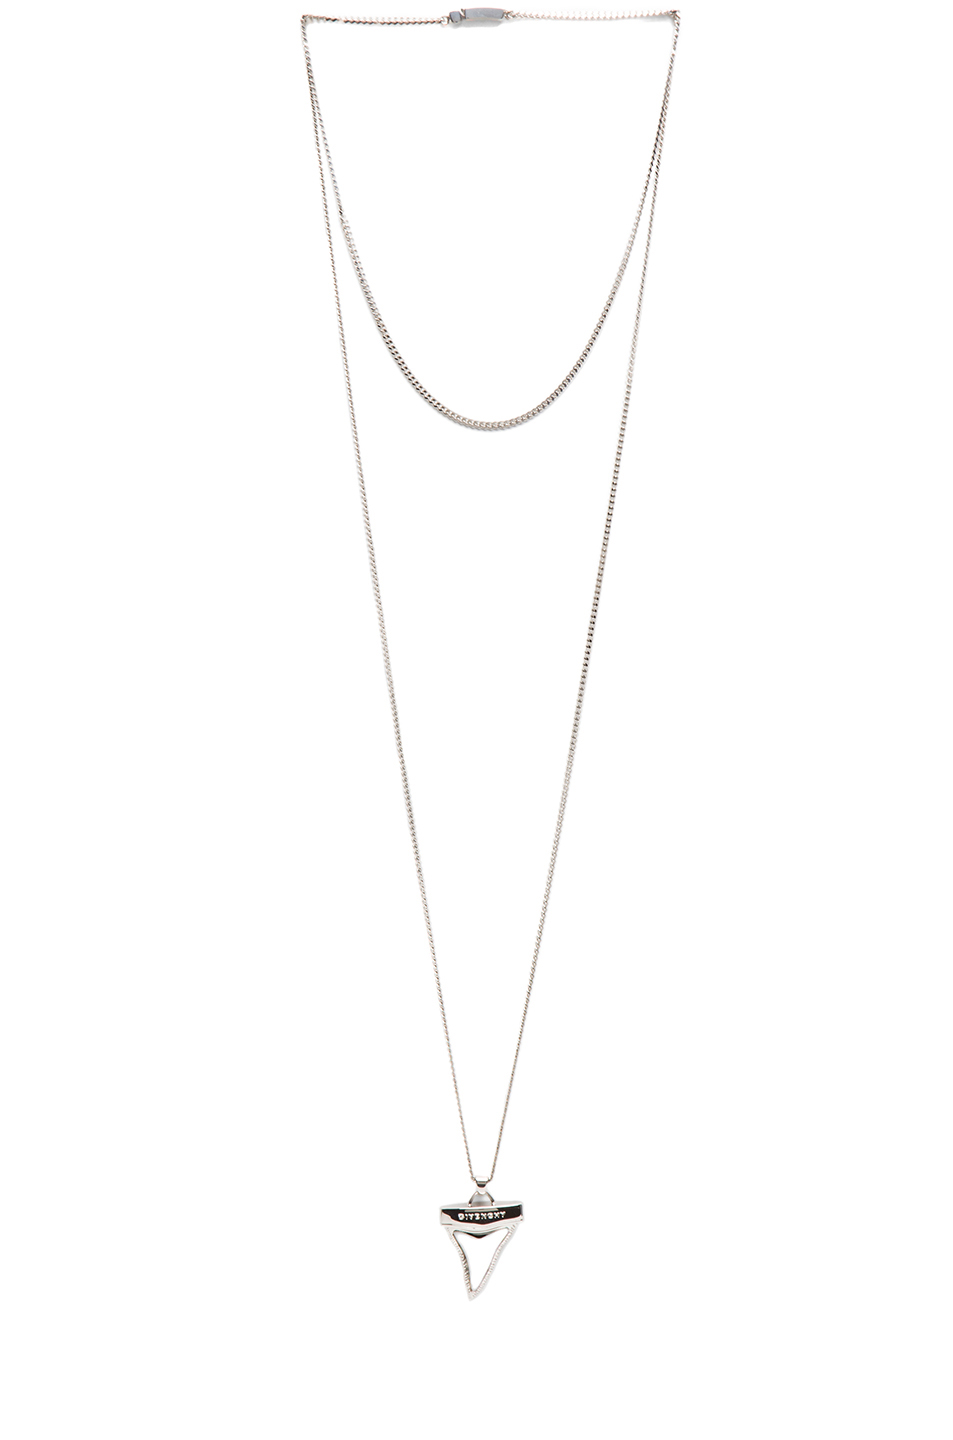 GIVENCHY|Small Shark Tooth Brass Necklace in Black & Silver